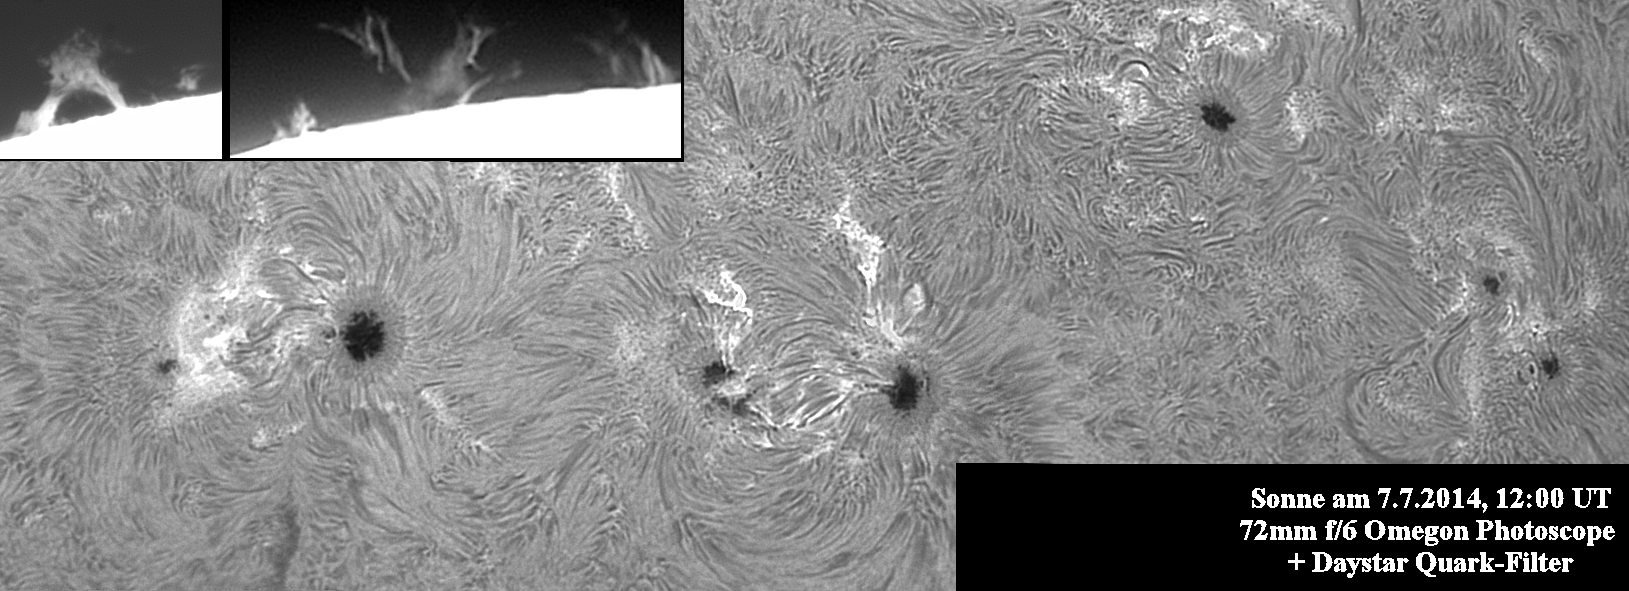 Sonne am 7.7.2014 mit dem Daystar-Quark-Chromosphere